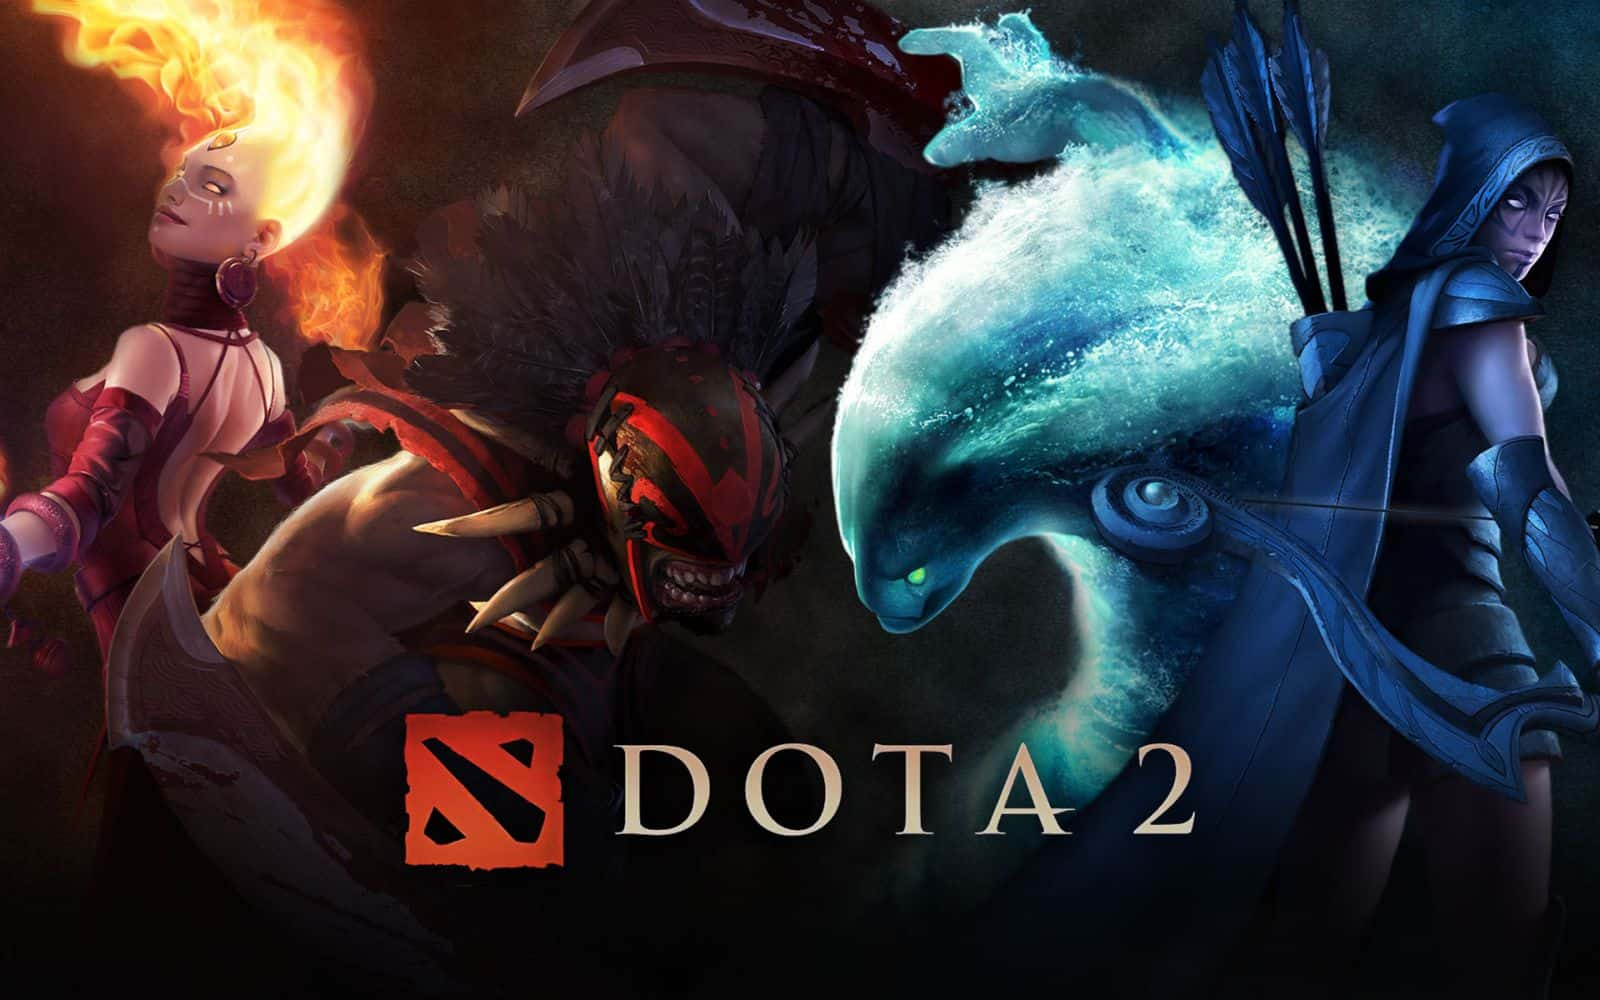 Dota 2 Version Full Mobile Game Free Download